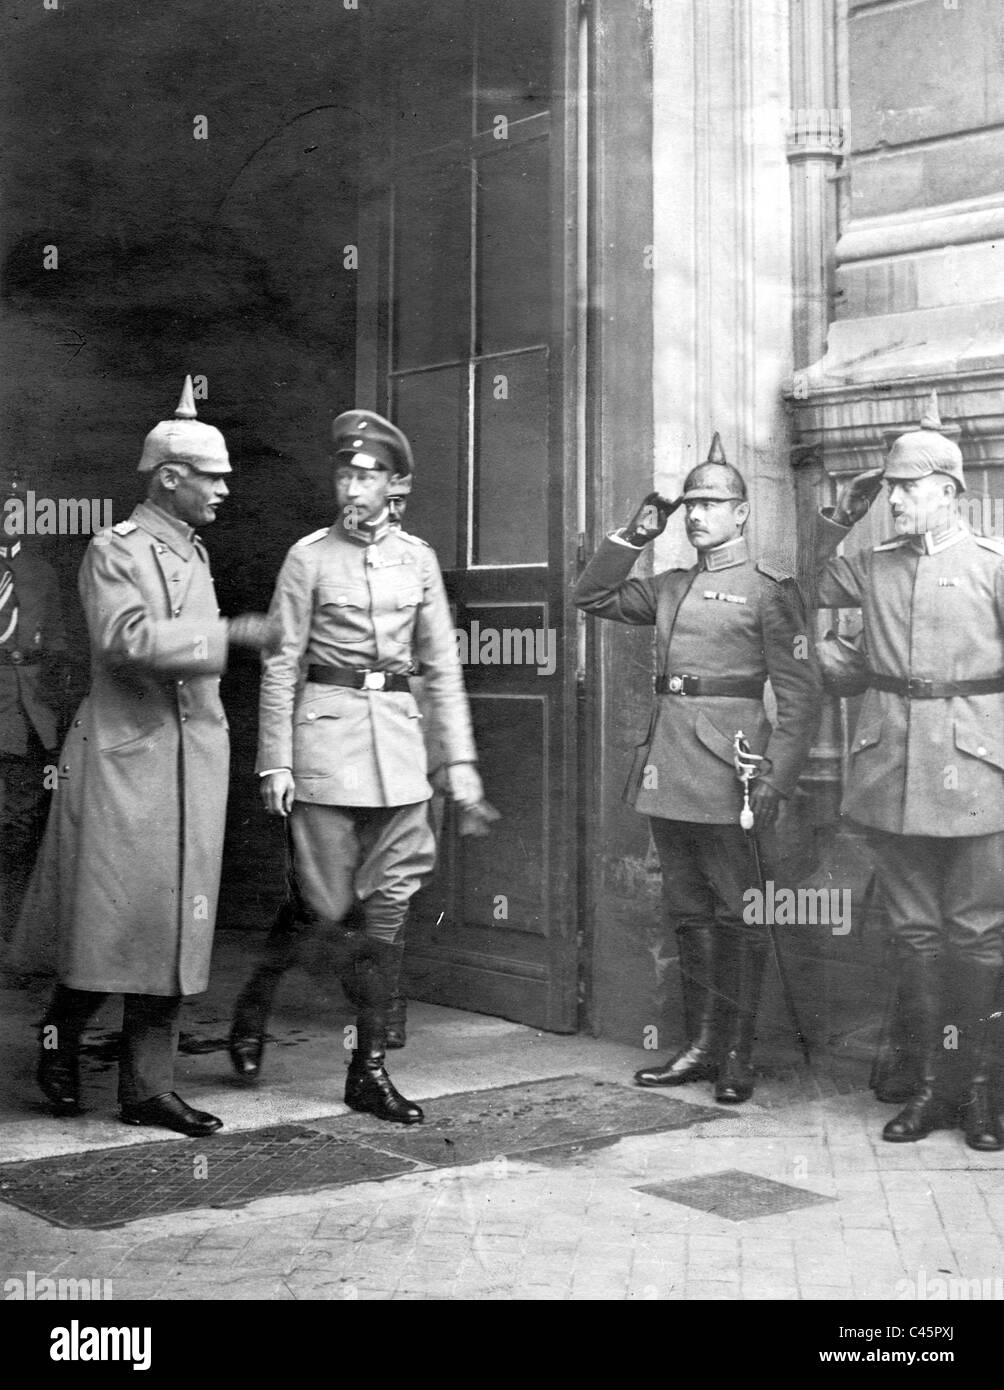 Wilhelm of Prussia and Rupprecht of Bavaria, 1917 Stock Photo